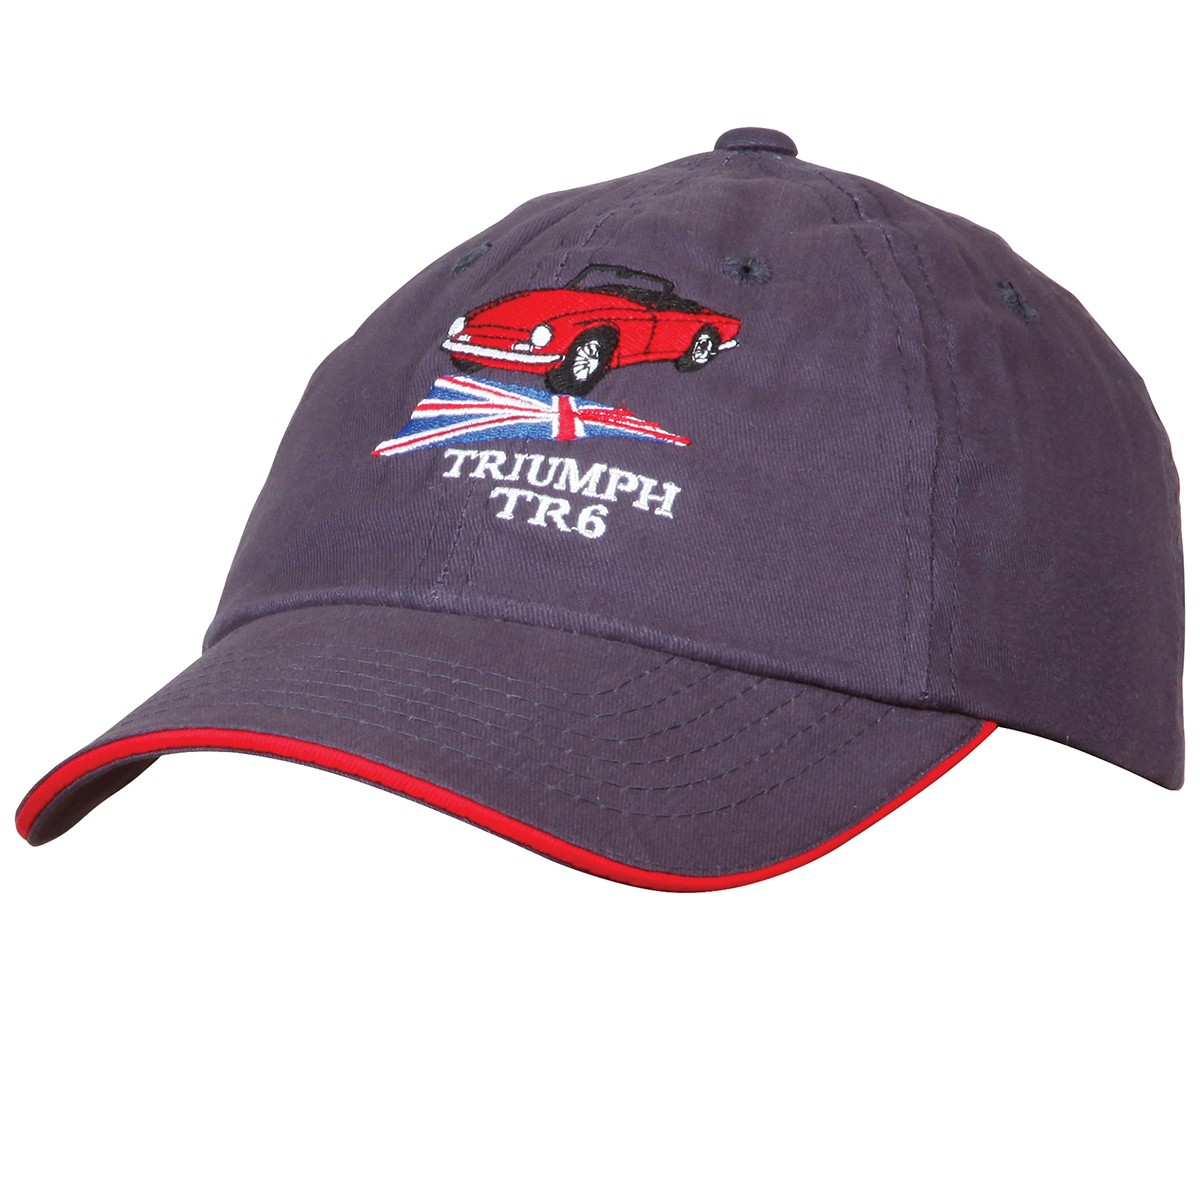 219 946 Triumph Tr6 Hat Navy With Red Sandwich Moss Motors